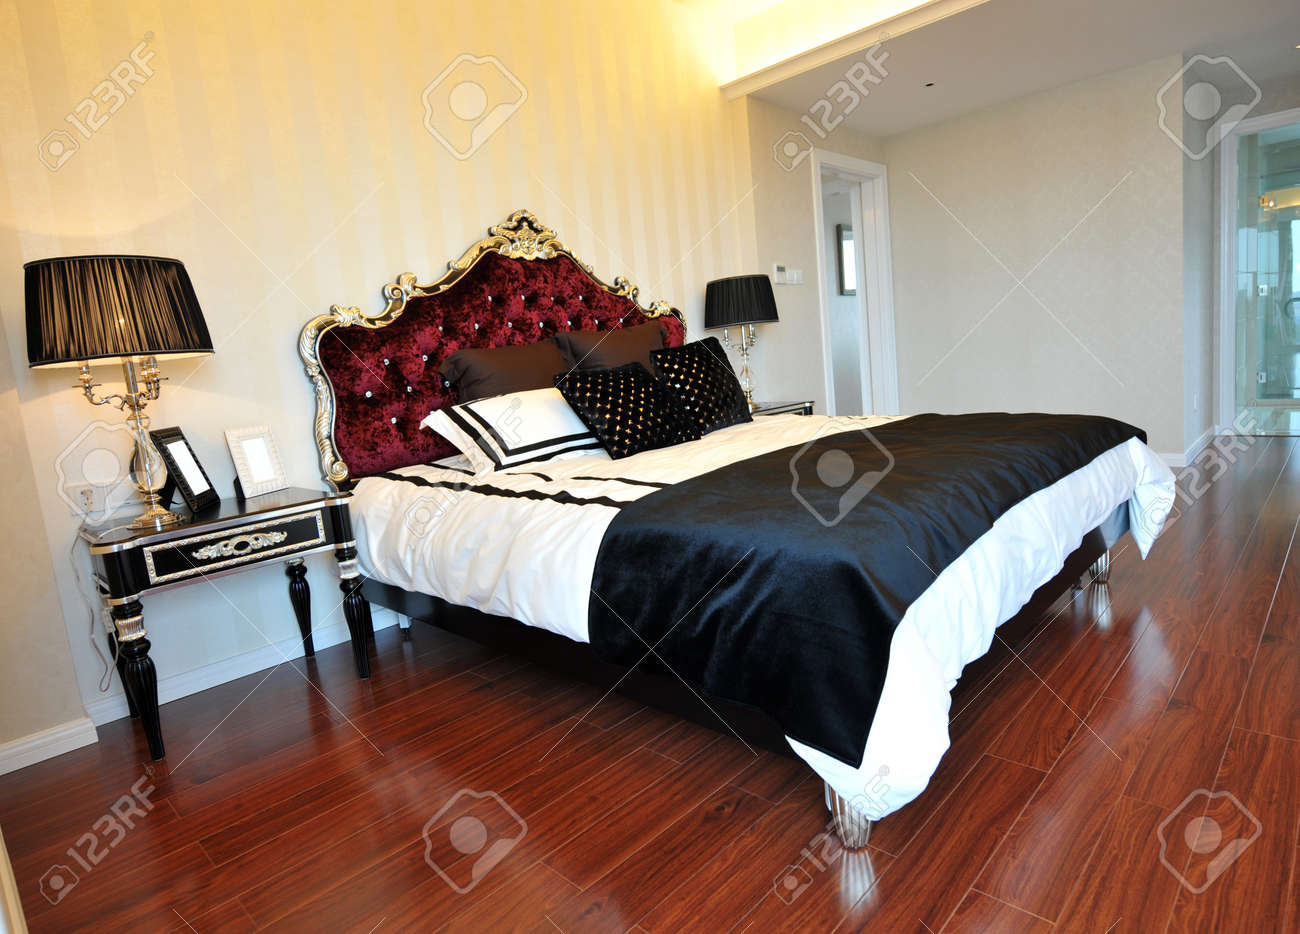 Double bed in the modern interior room Stock Photo - 13536858